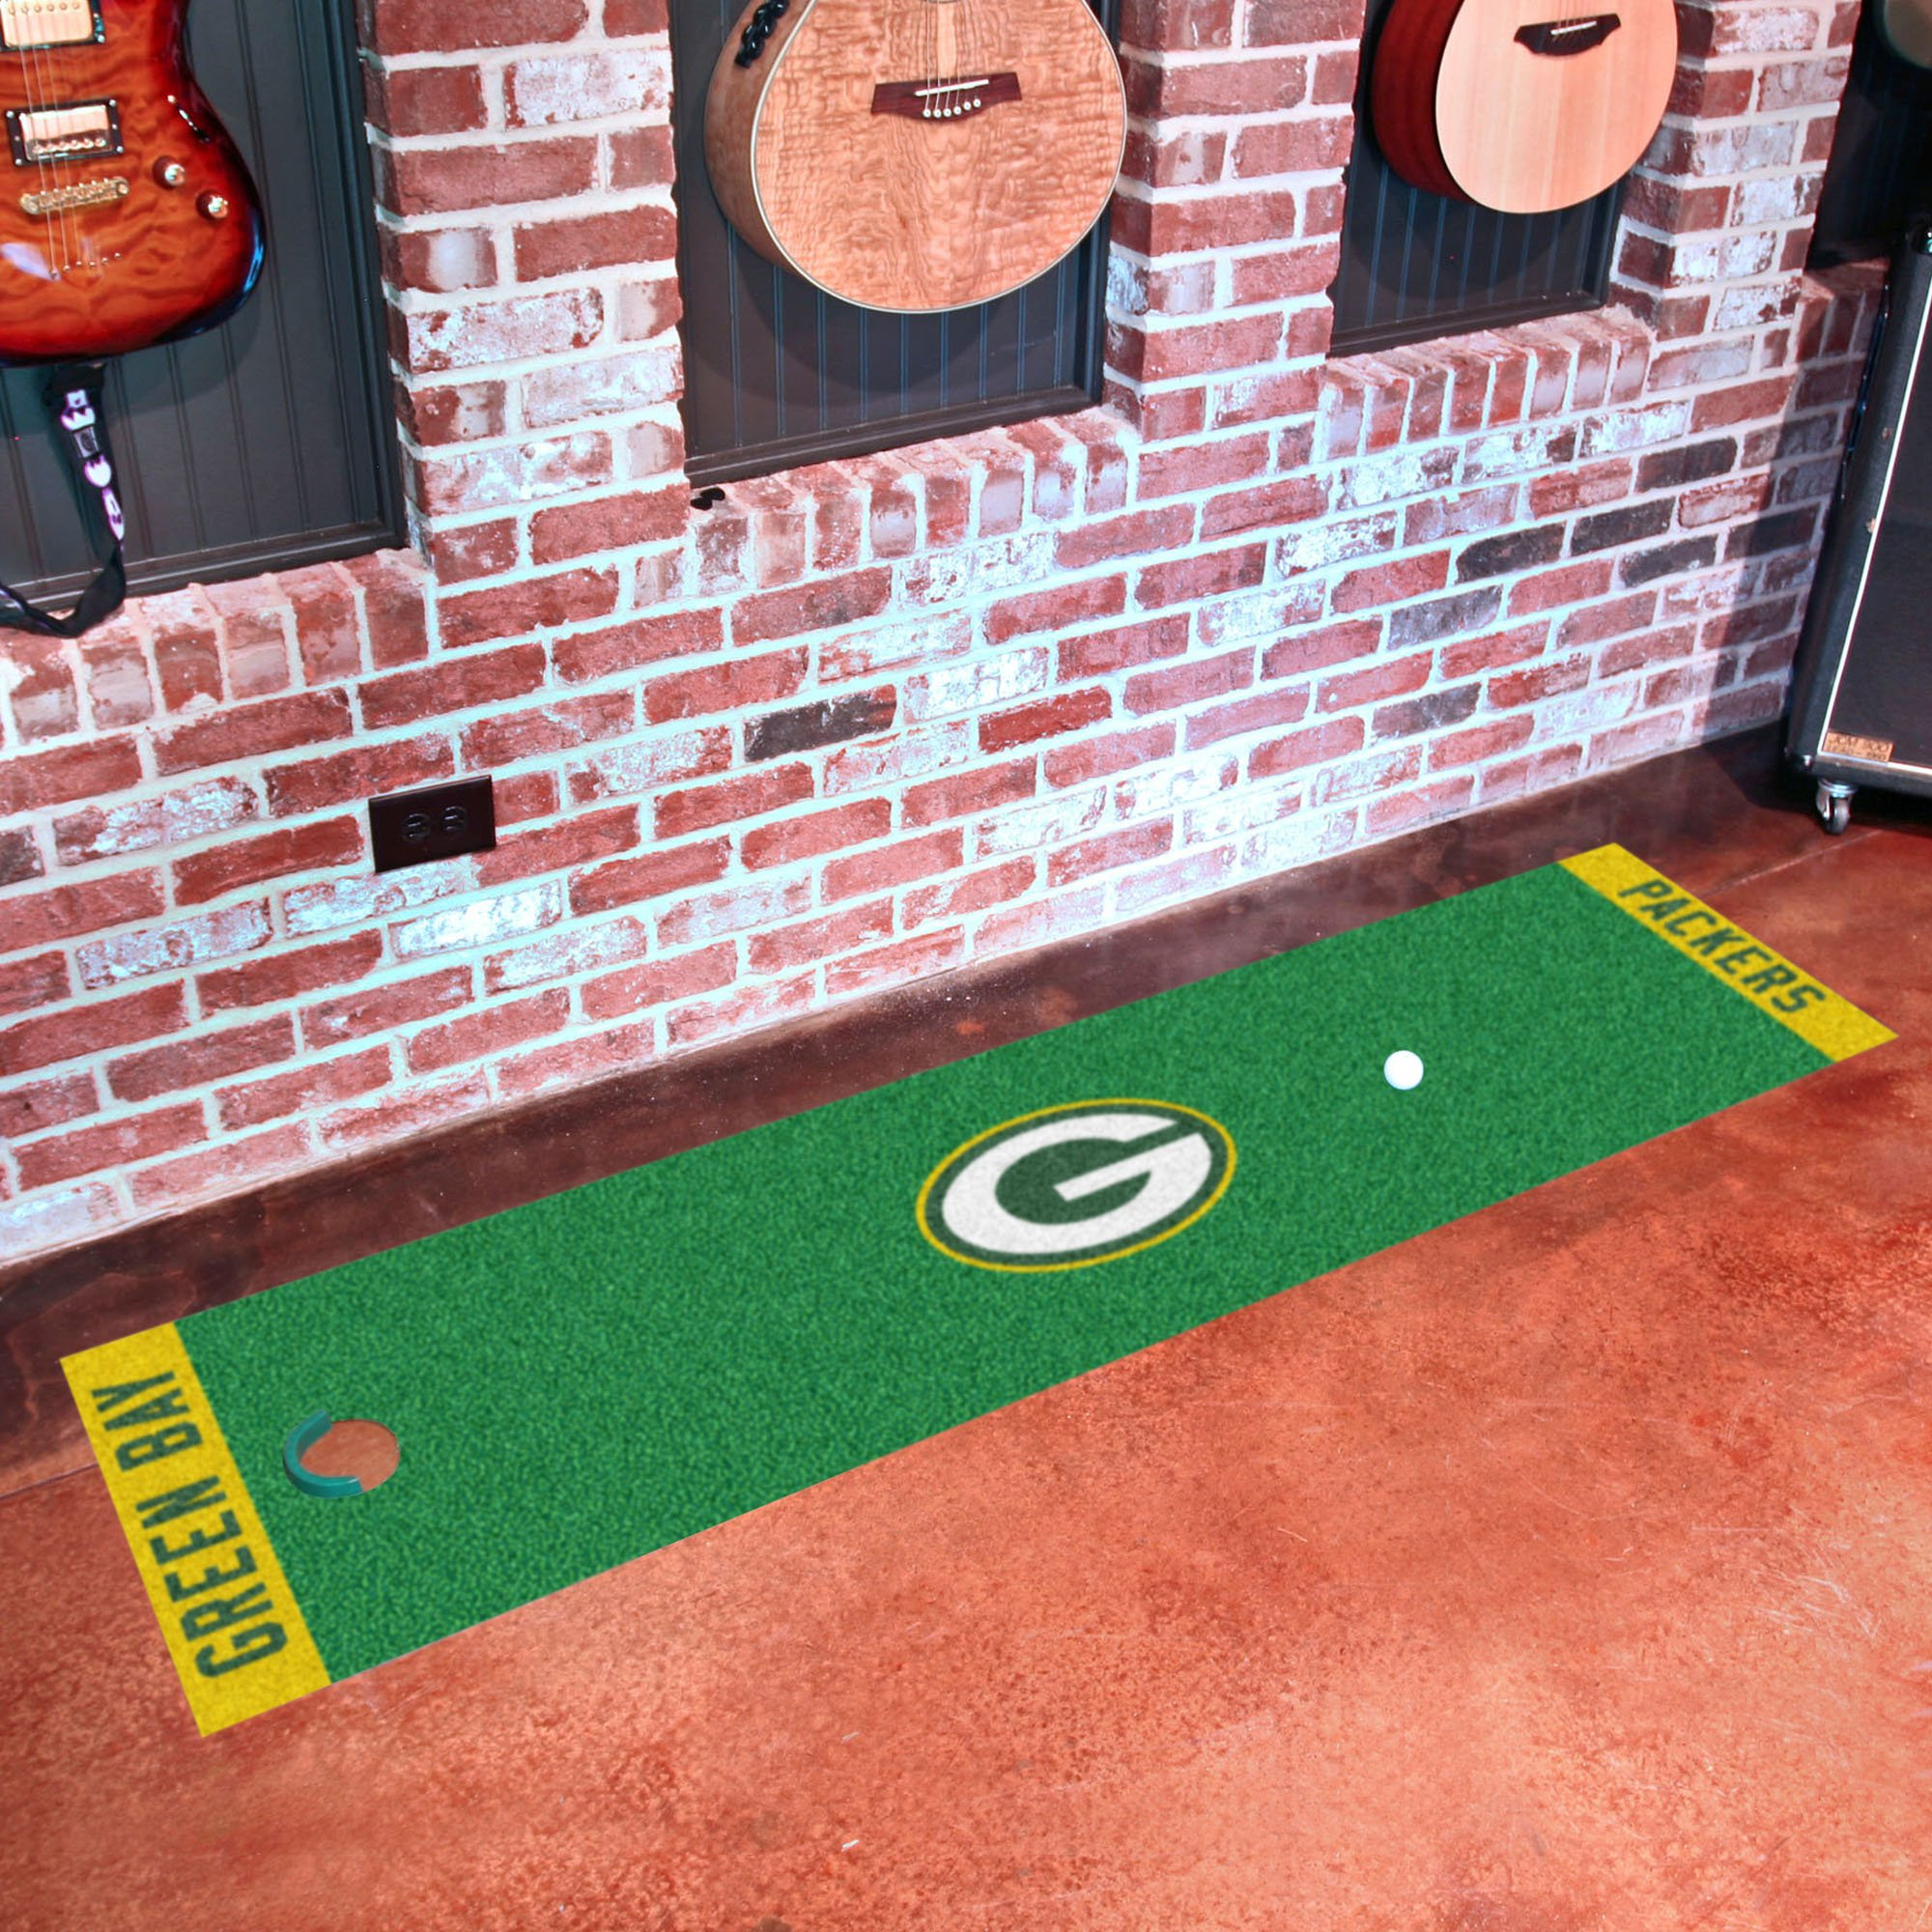 Fanmats NFL Green Bay Packers Nylon Face Putting Green Mat by Fanmats (Image #2)